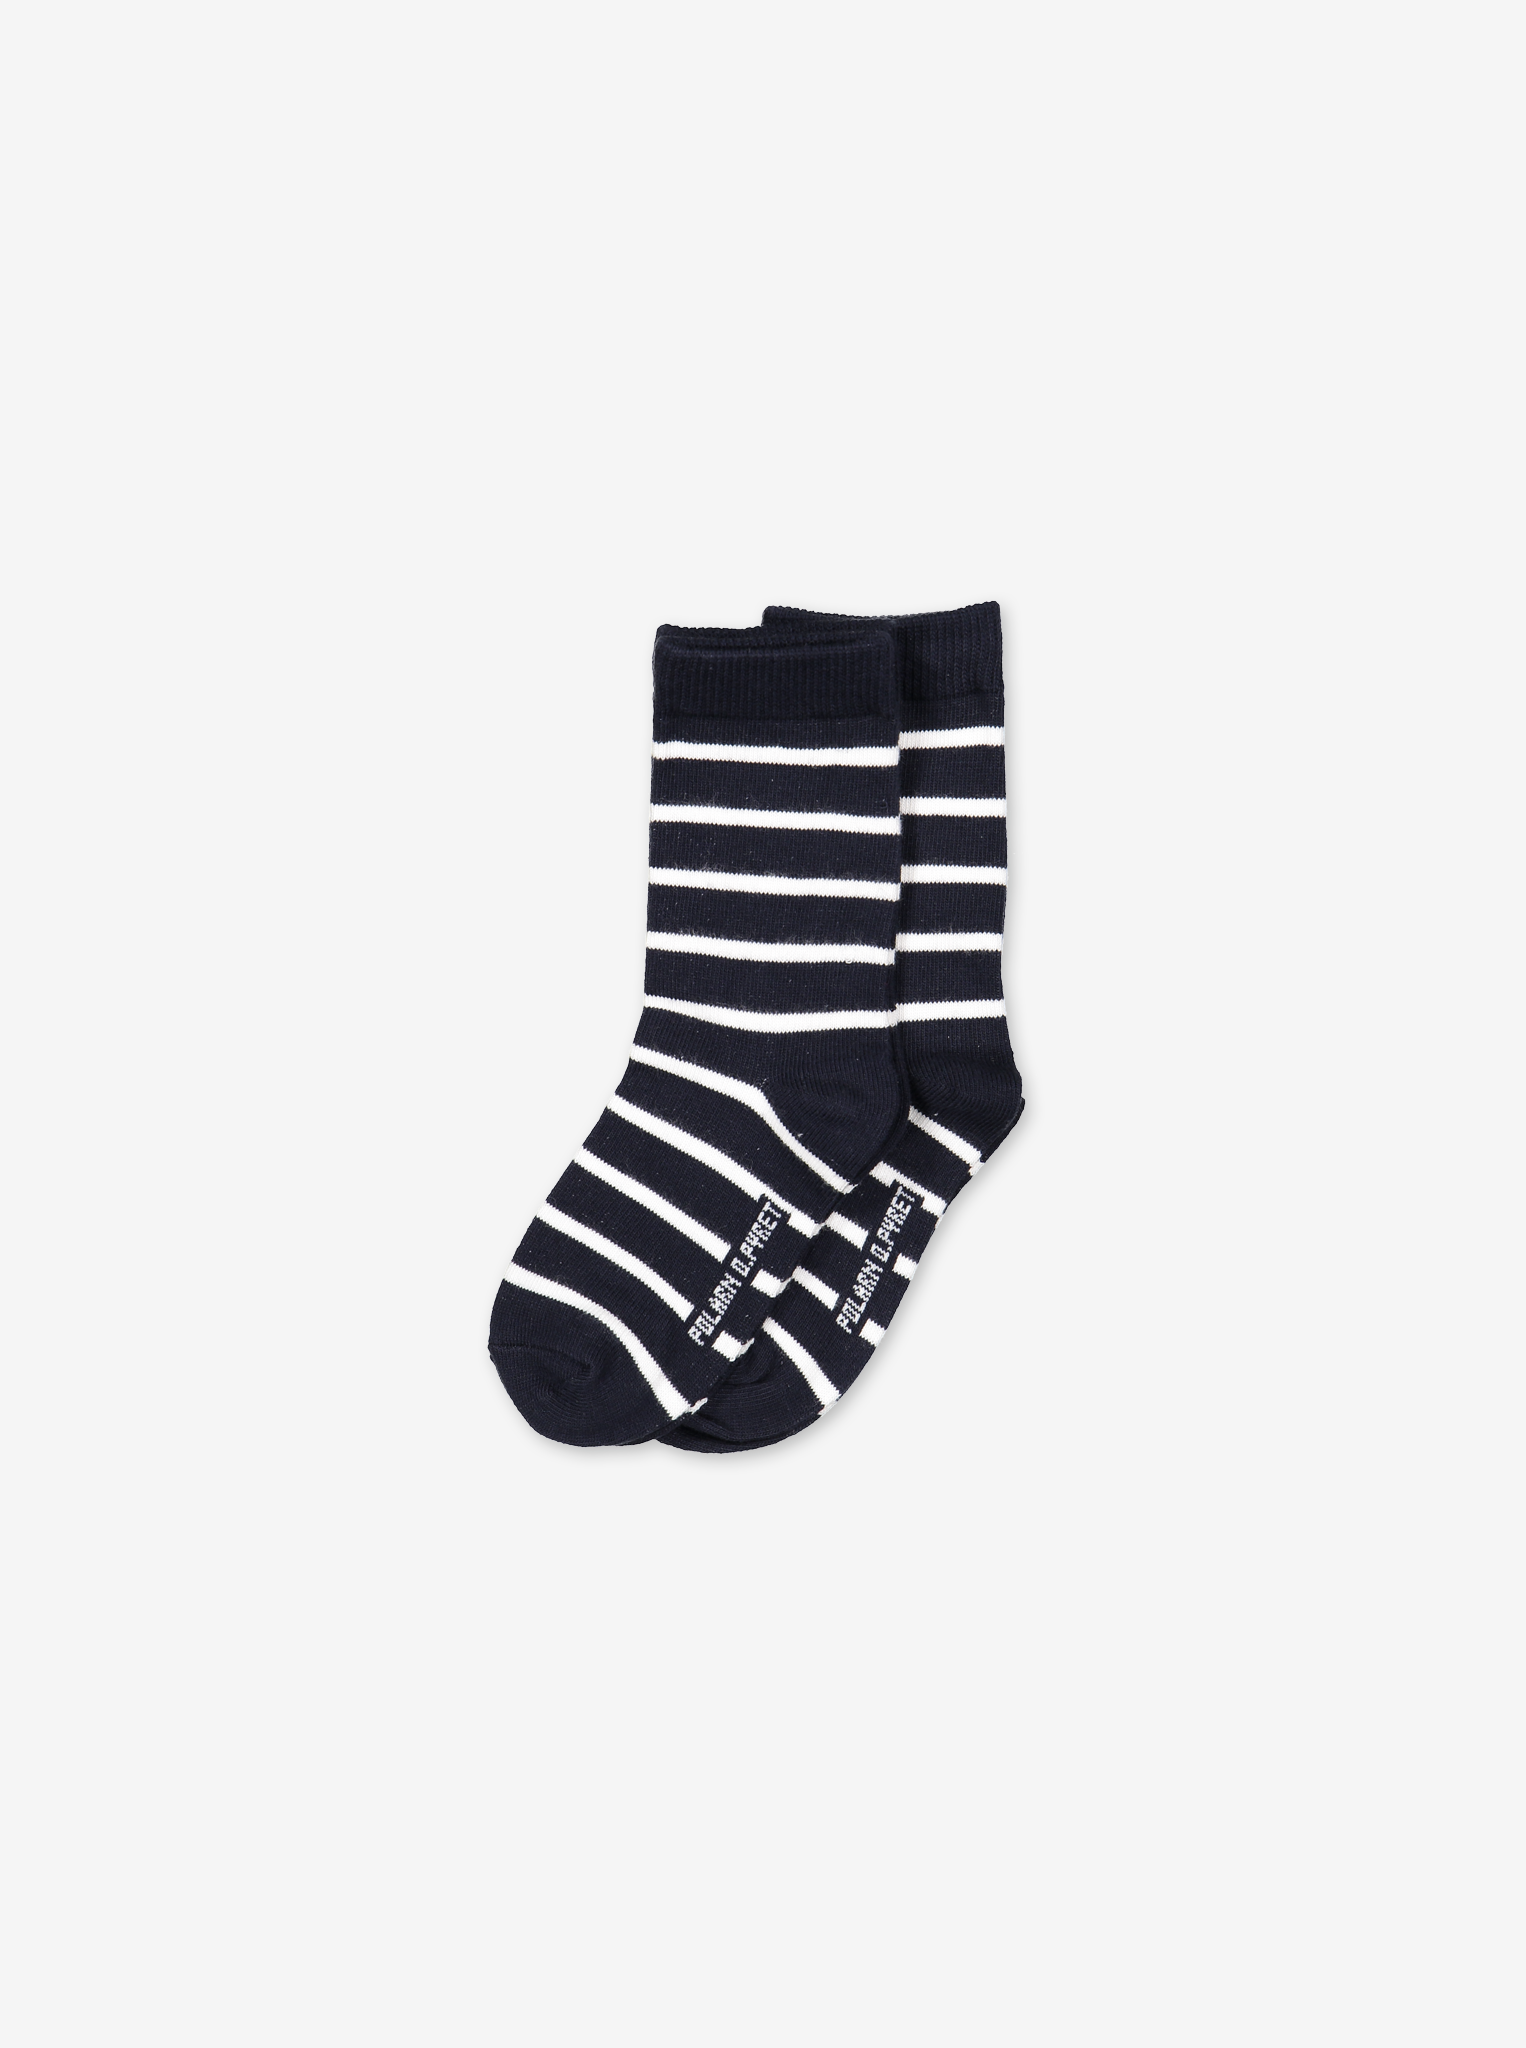 Kids 2 Pack Striped Socks Navy Unisex 2-12y